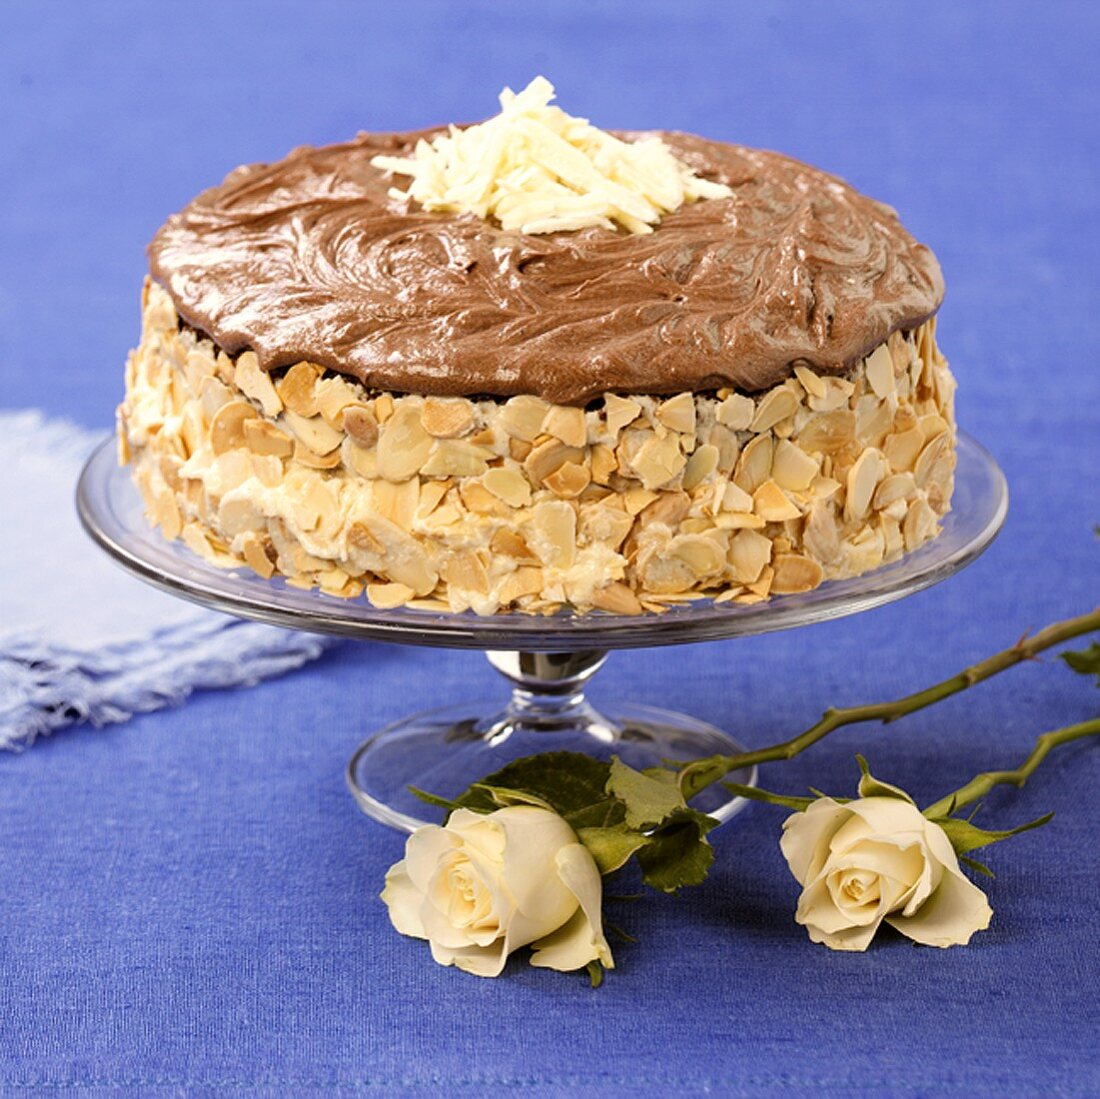 Chocolate almond cake on cake stand